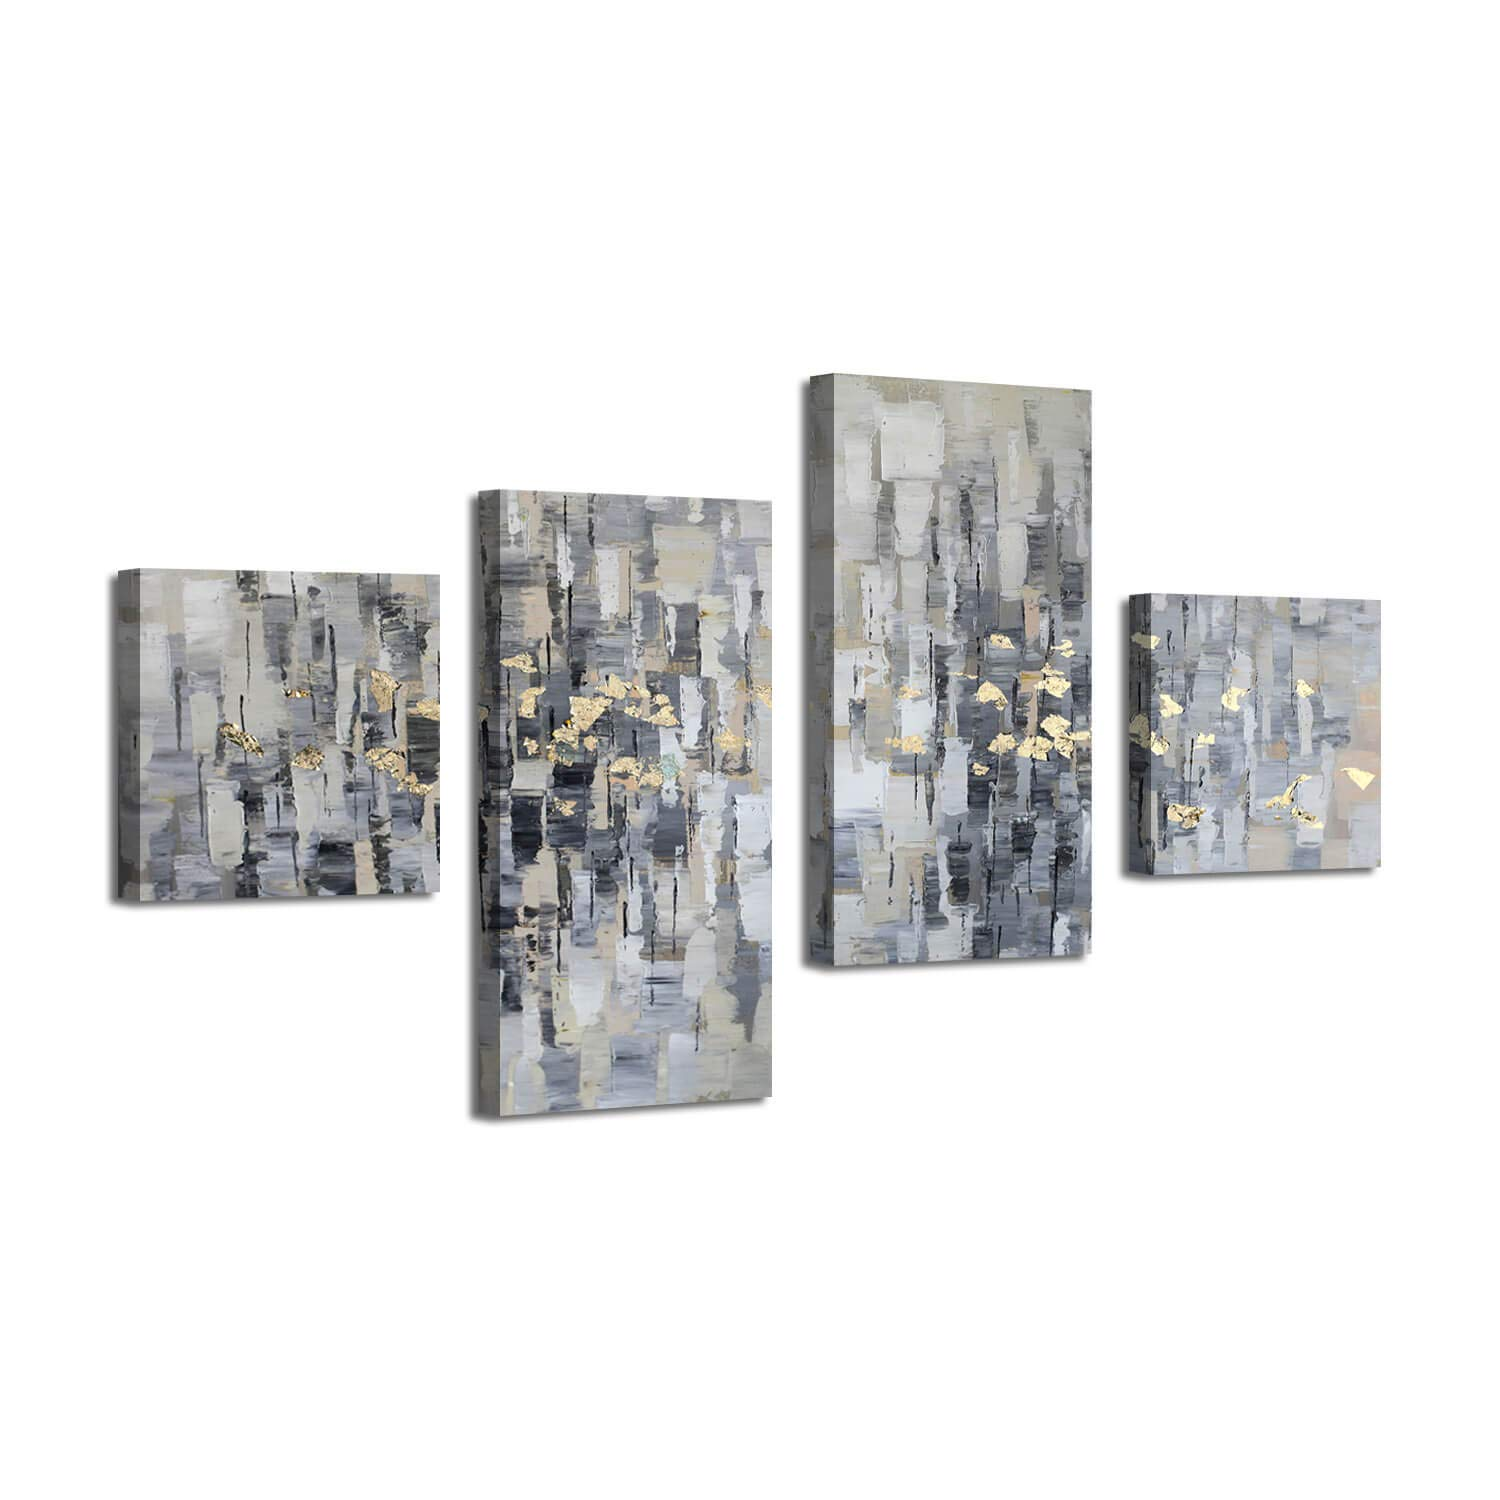 Artistic Path Abstract Canvas Picture Wall Art: Gray Artwork Gold Foil Painting for Living Room Office (32'' x 16'' x 2 Panels + 16'' x 16'' x 2 Panels)